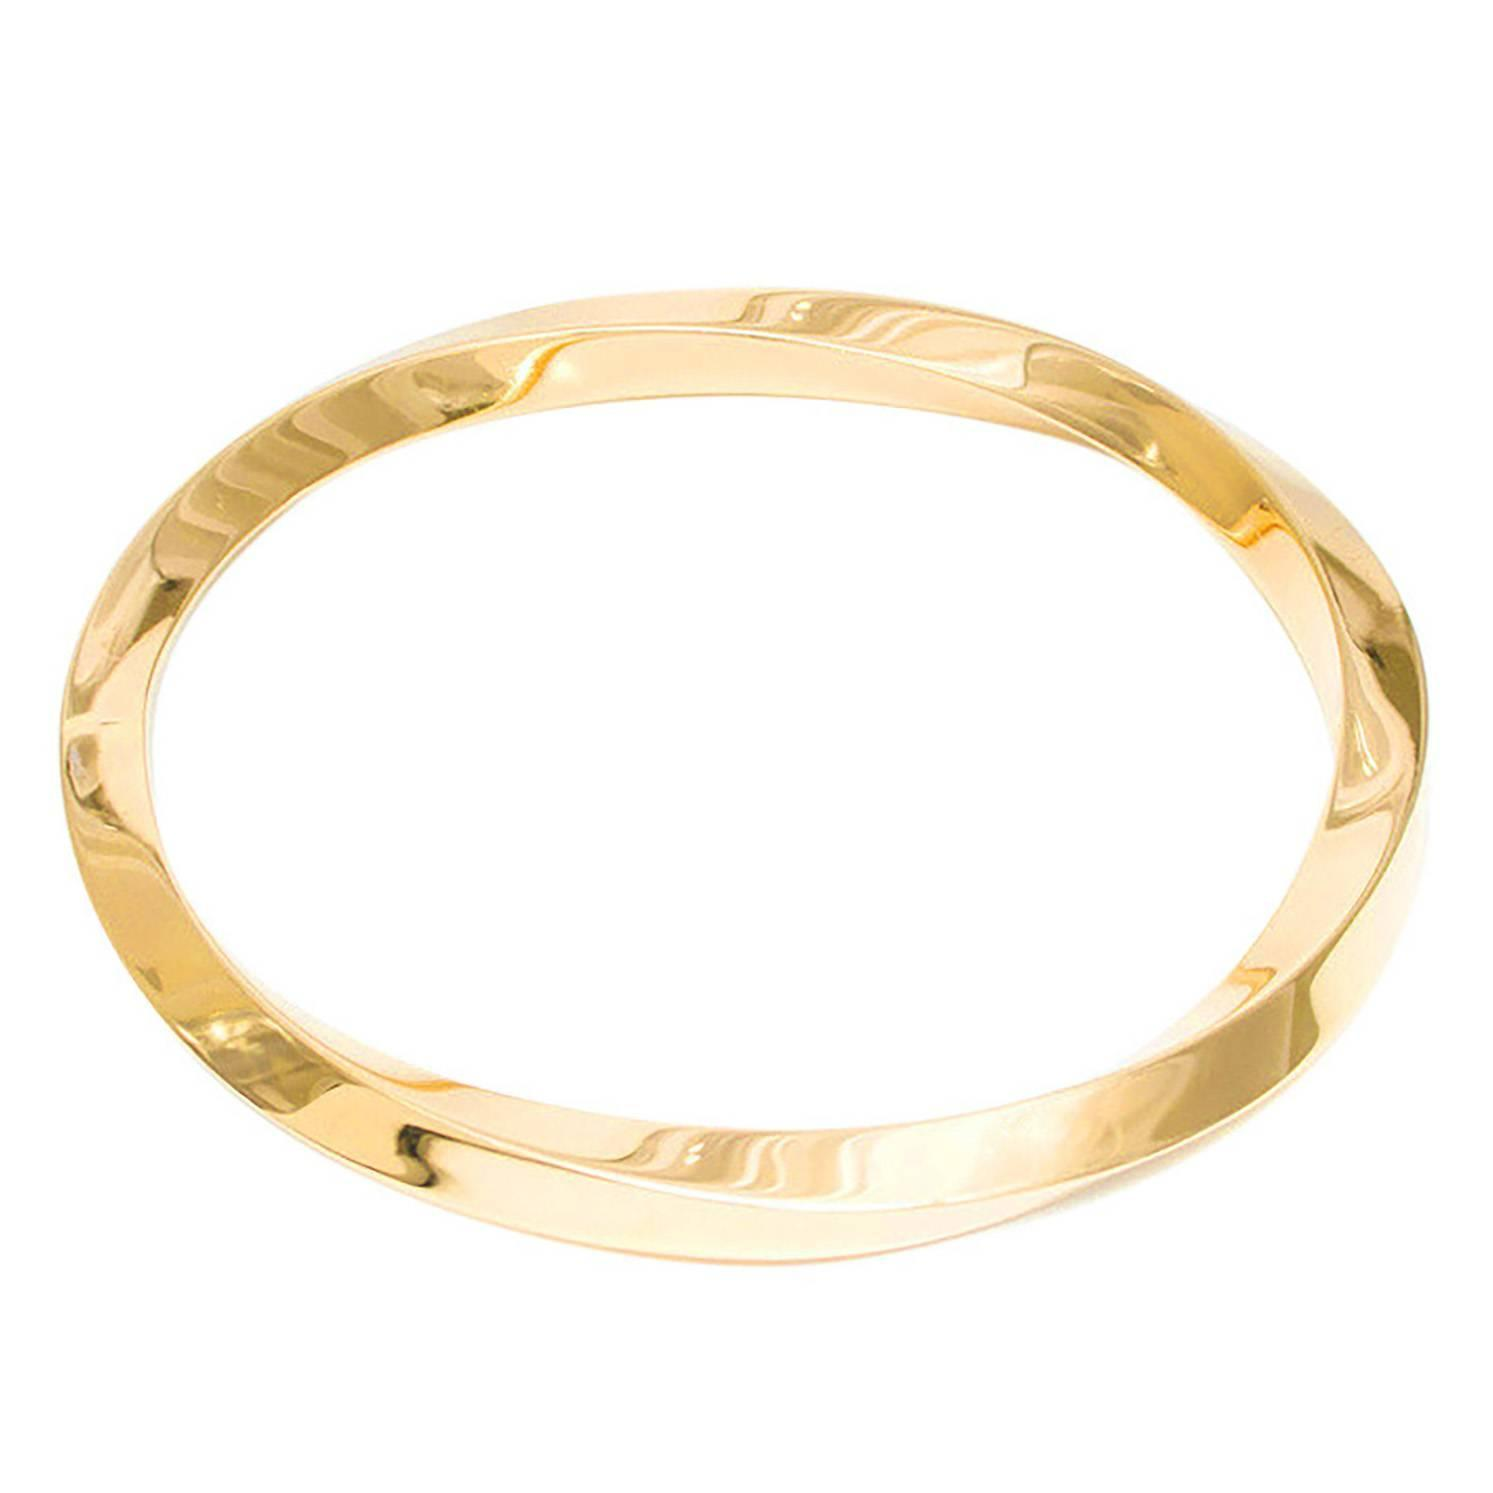 ayat gold islamic goldplated products two al bracelet silver multi bangles tone kursi bangle sterling popular plated